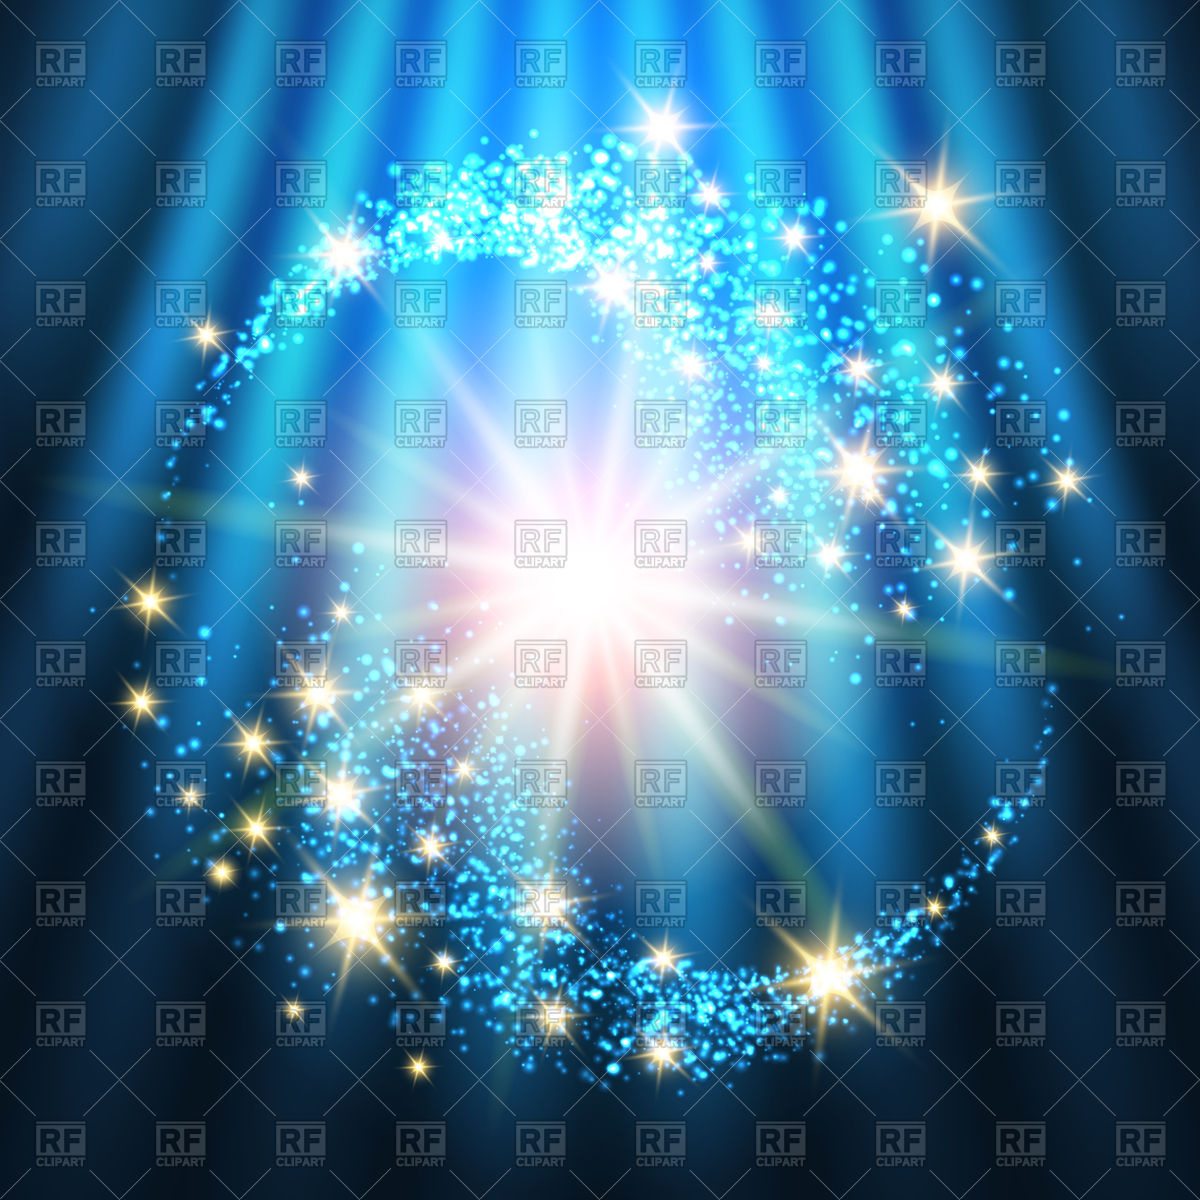 Bright holiday background with glowing stars Vector Image of 1200x1200